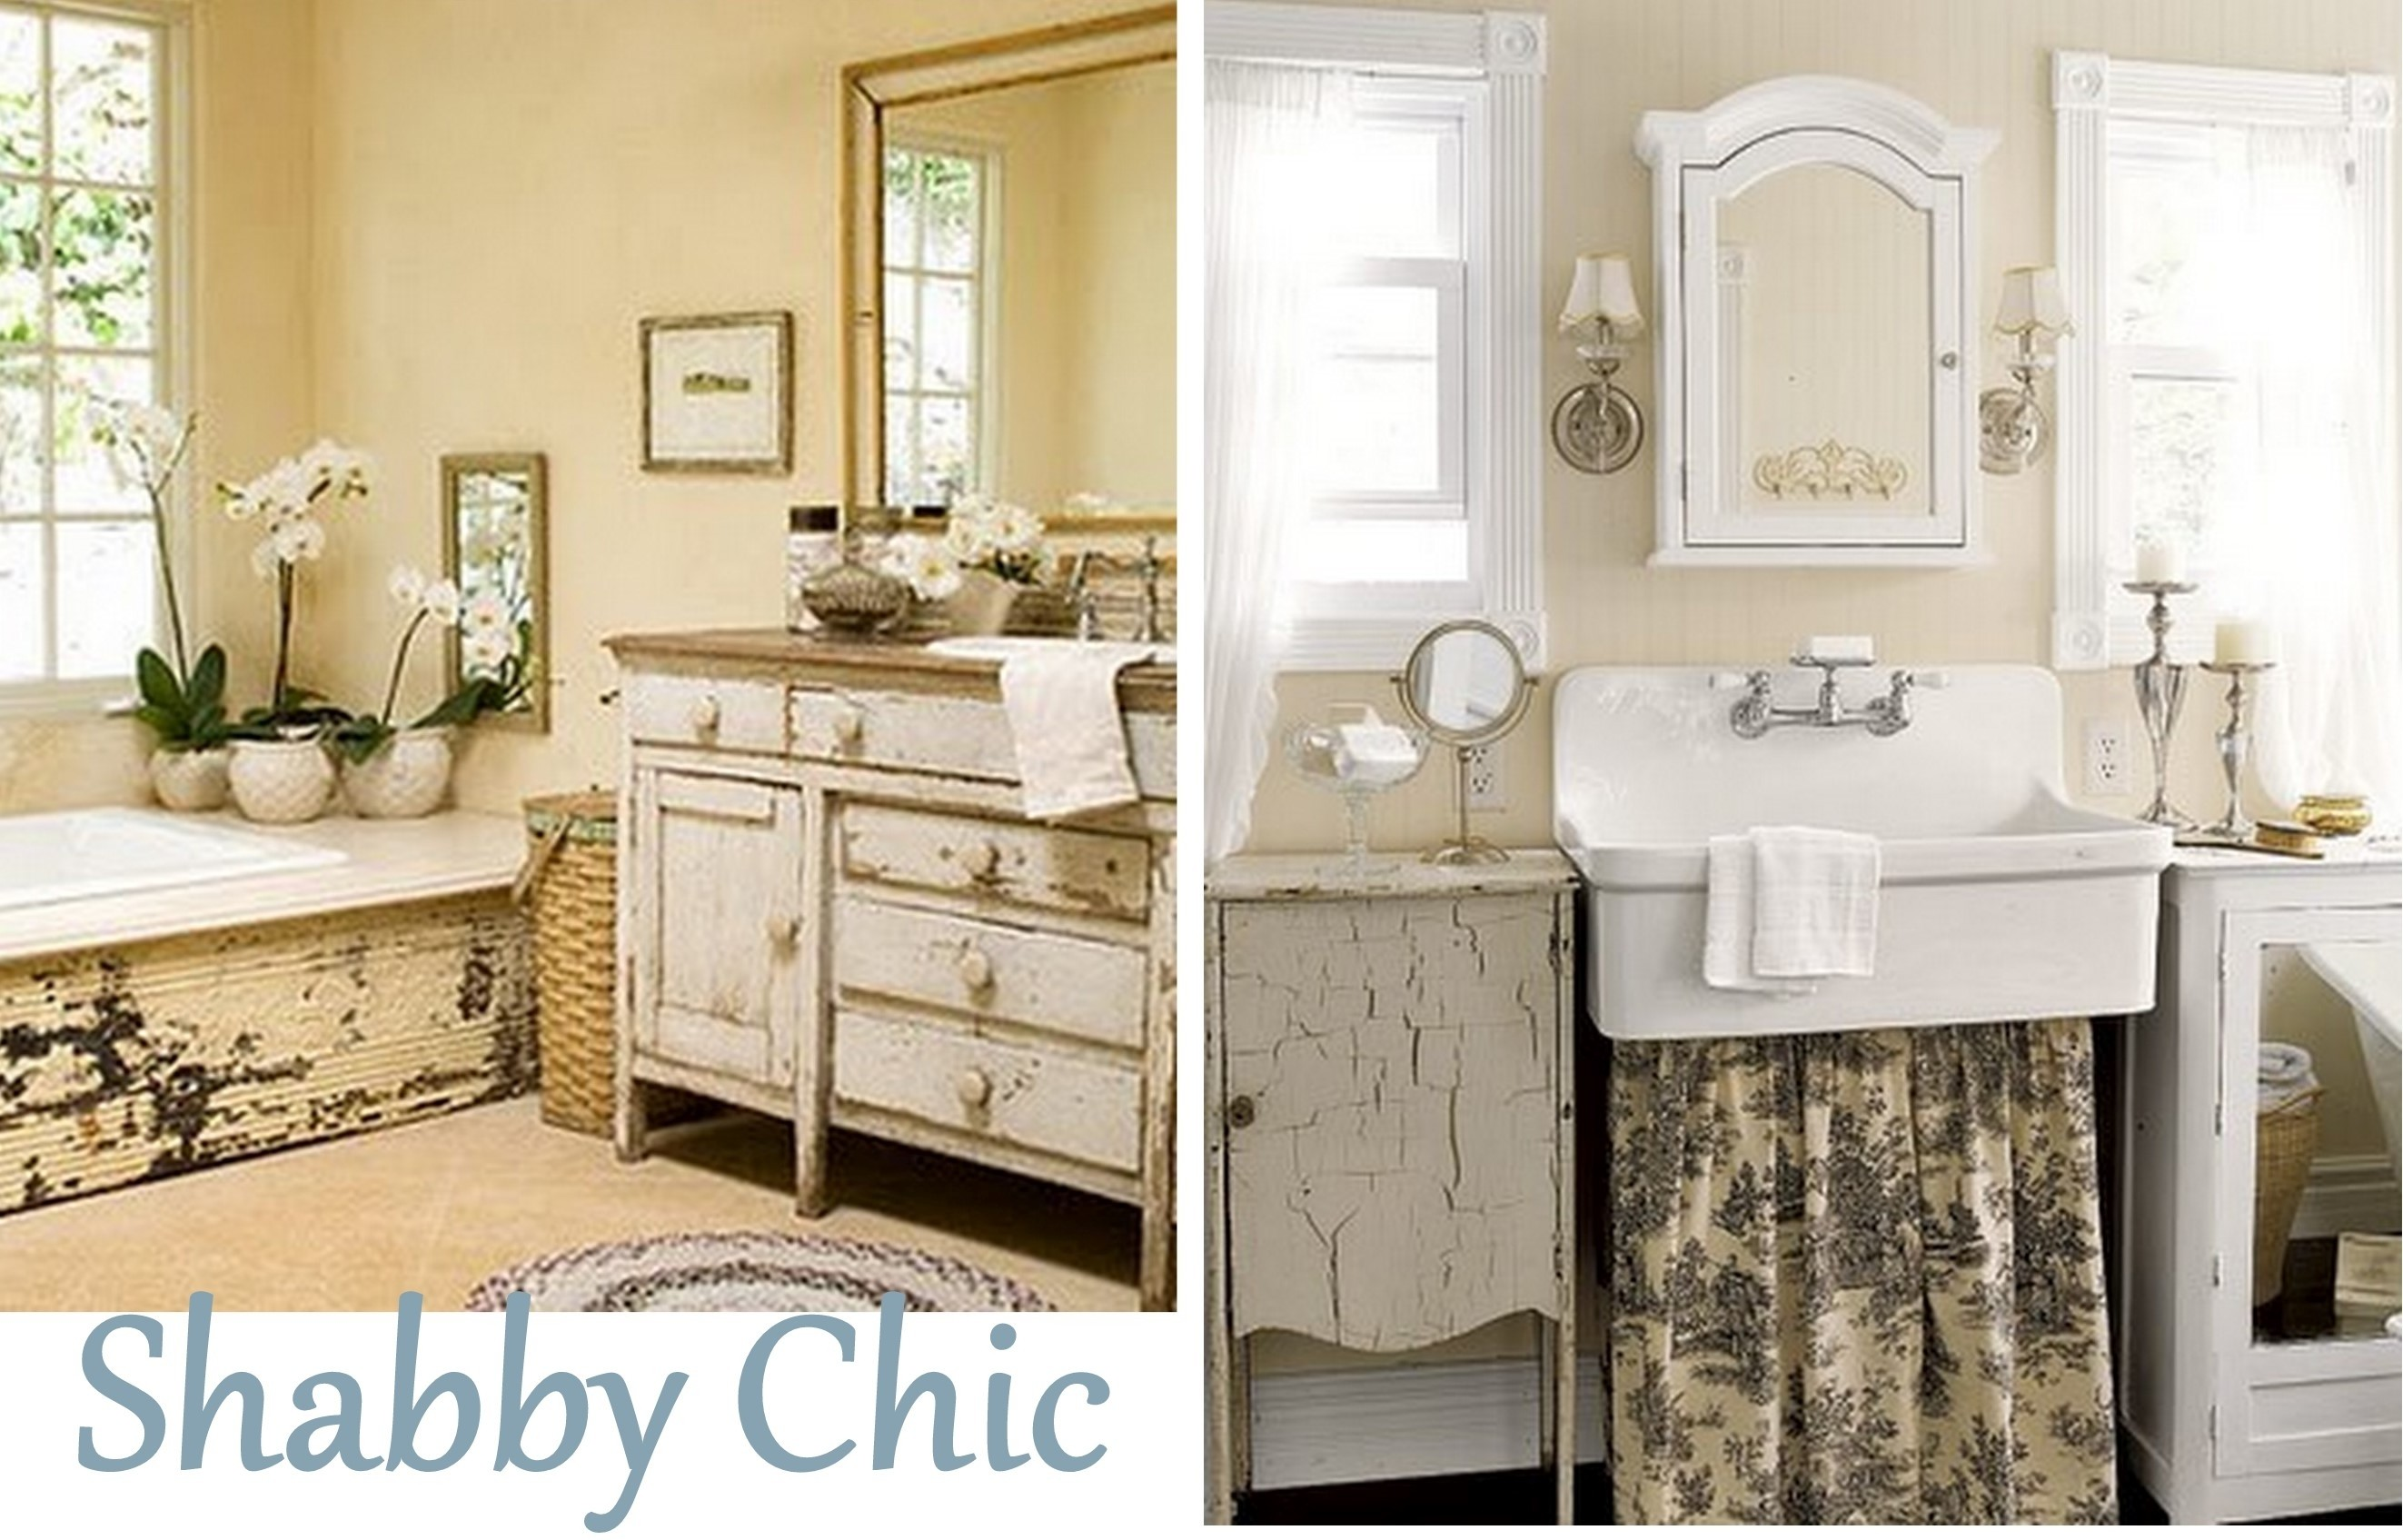 Fantastic Shabby Chic Bathroom Concept